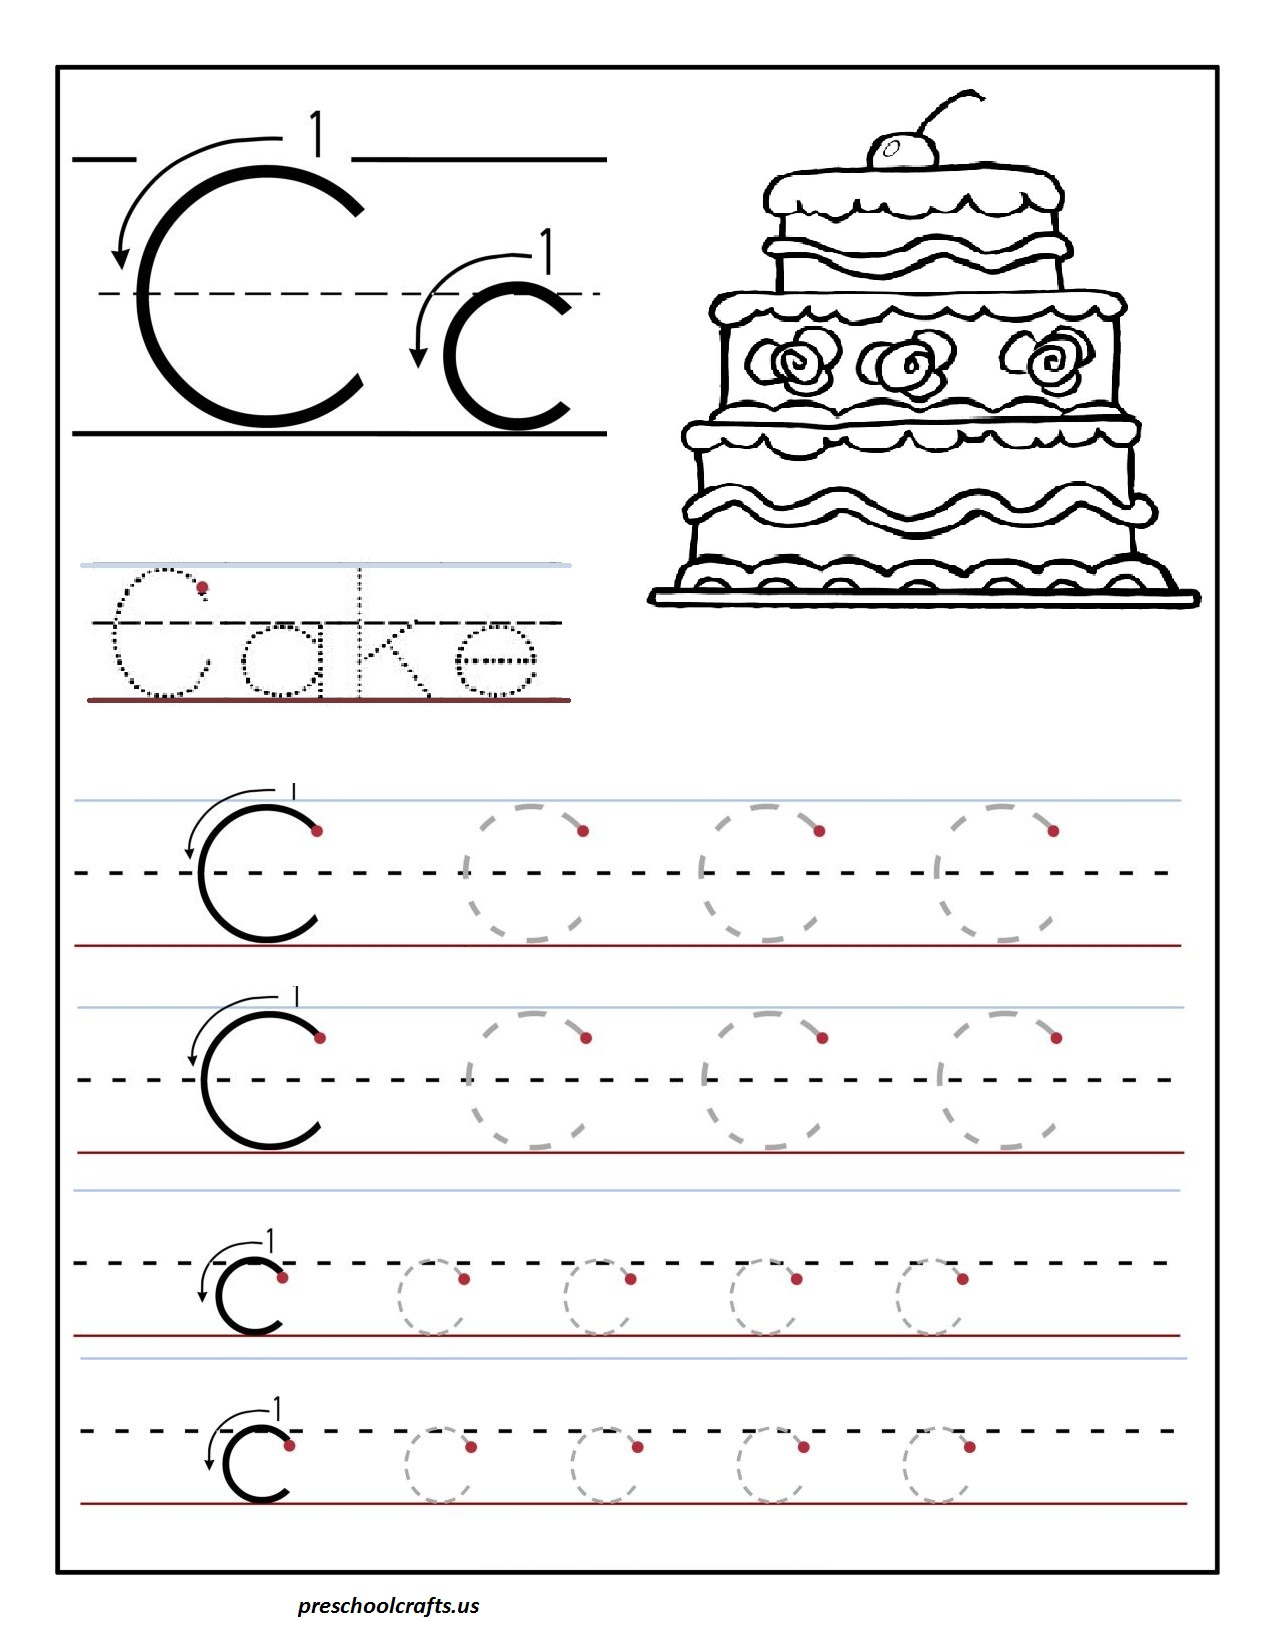 printable letter c tracing worksheets for preschool preschool crafts. Black Bedroom Furniture Sets. Home Design Ideas